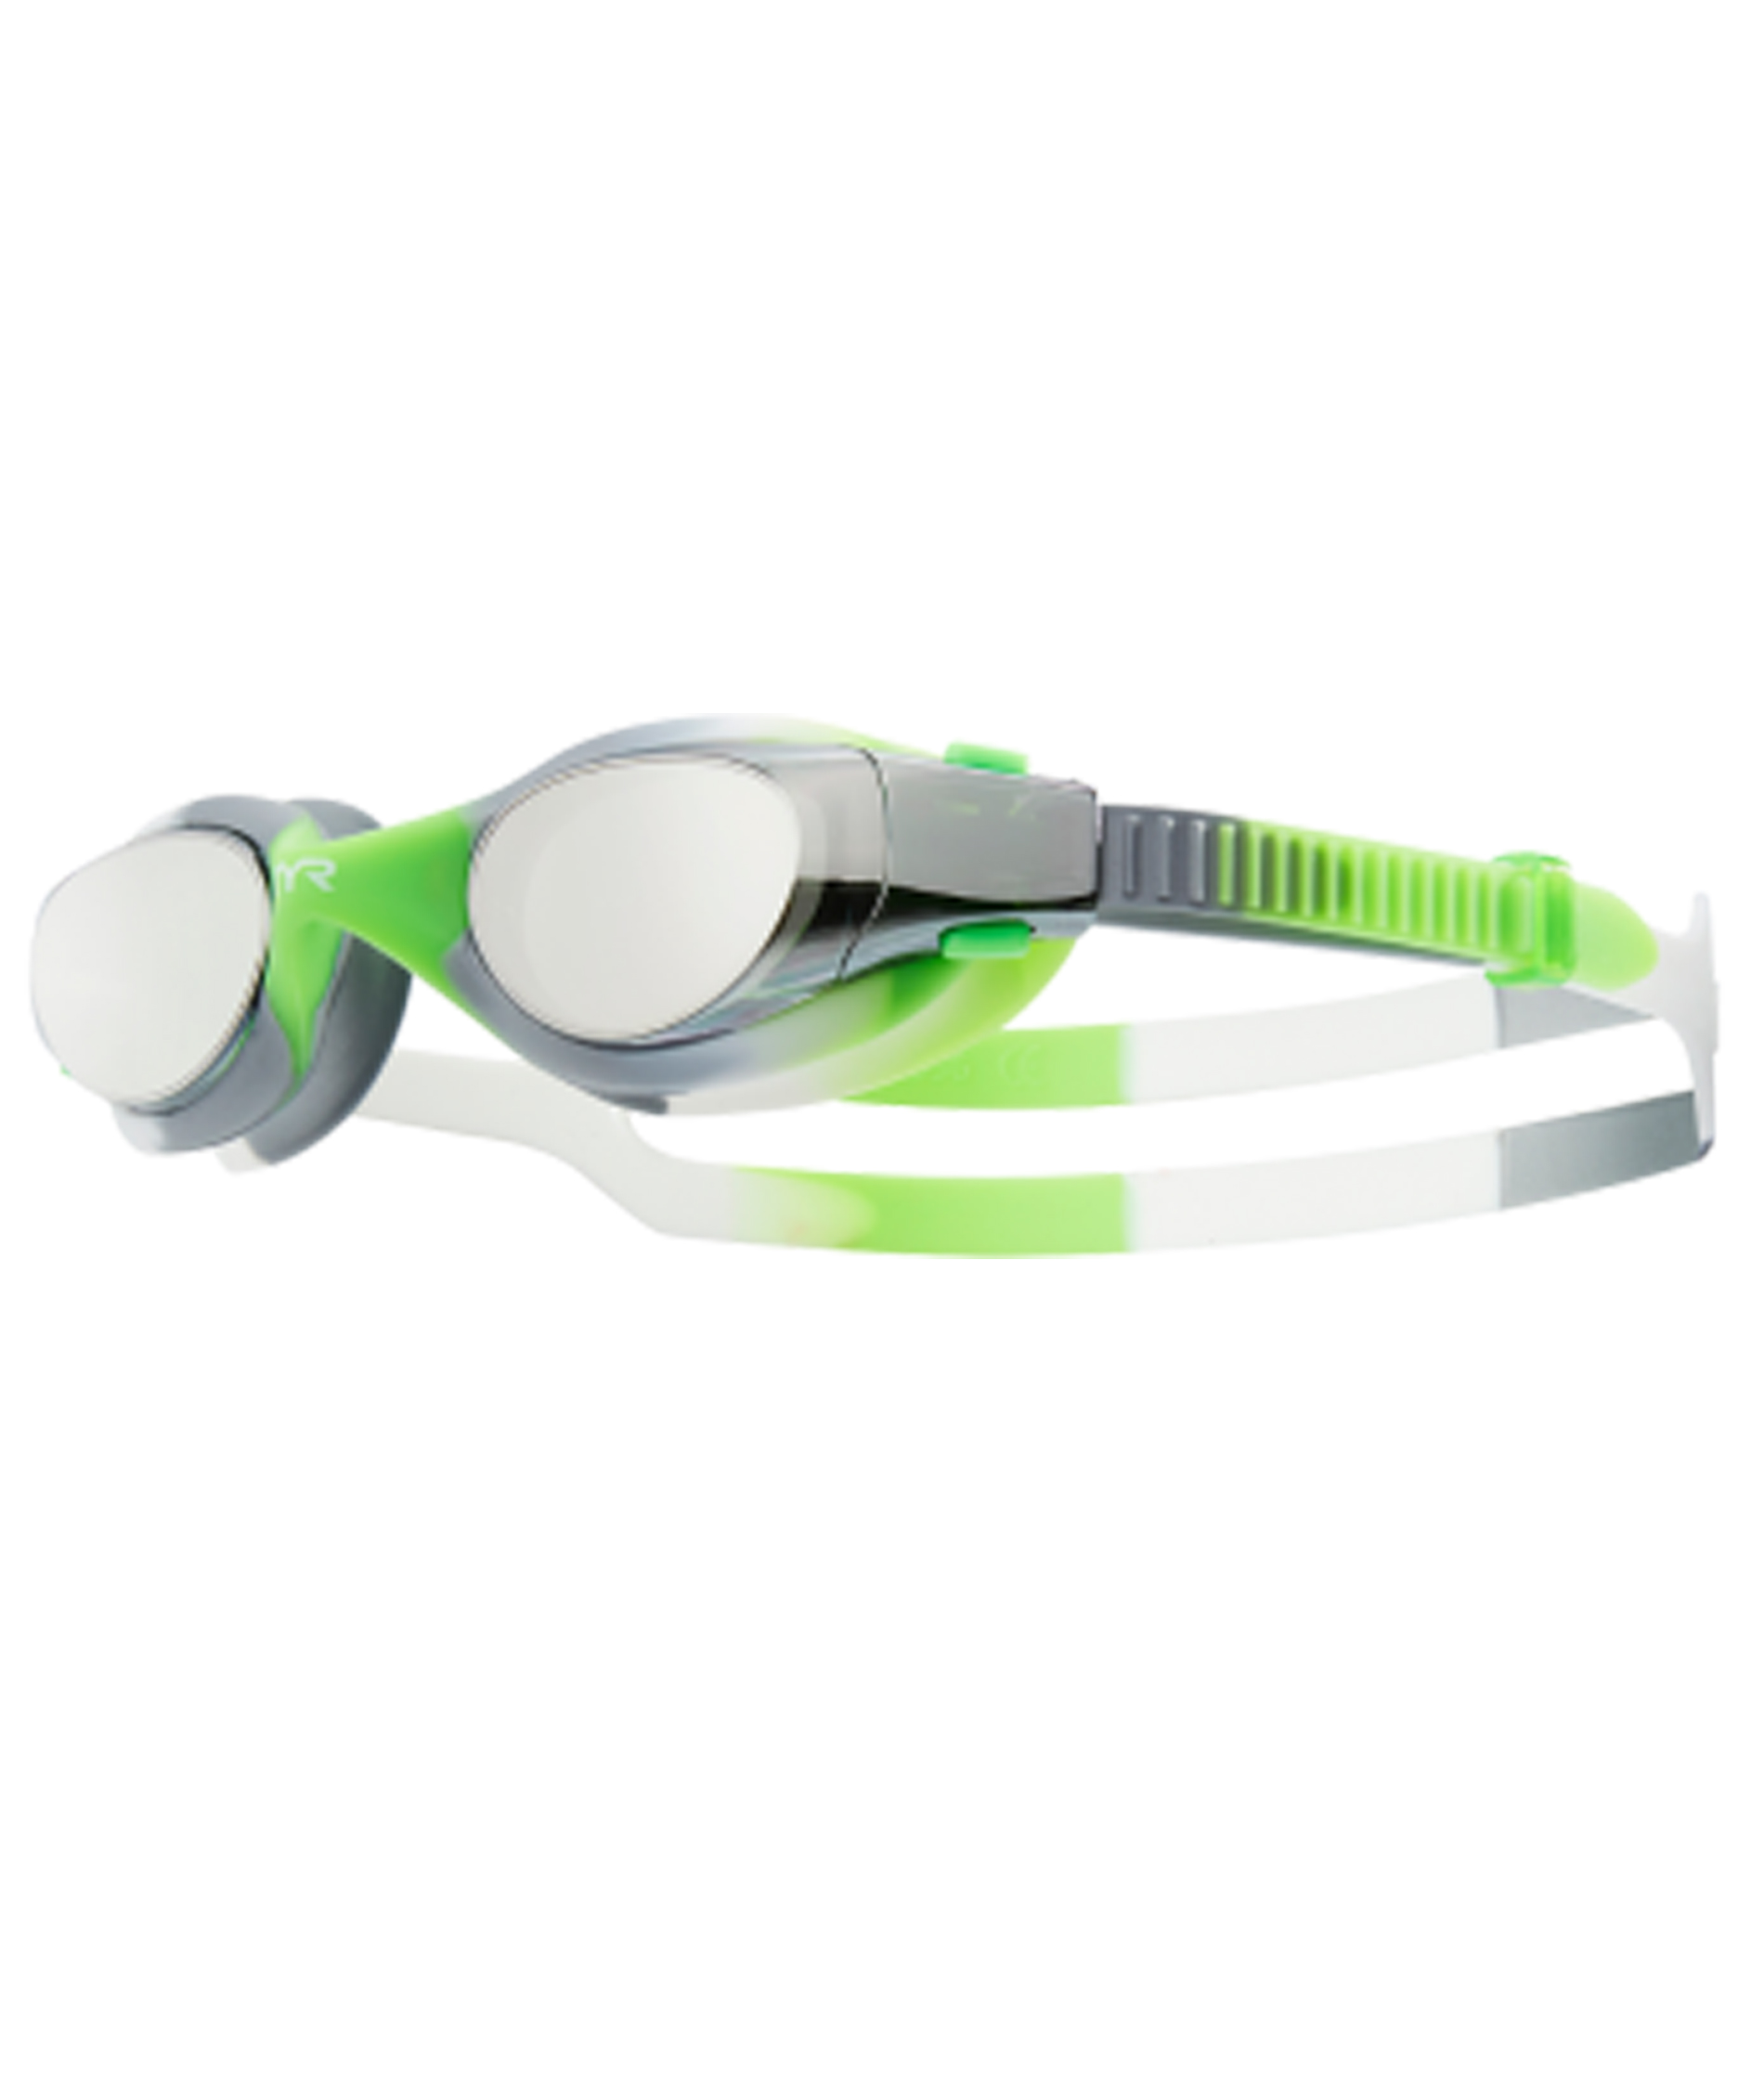 TYR Vesie Mirrored Youth Tie Dye Goggles - Lime/Grey/White